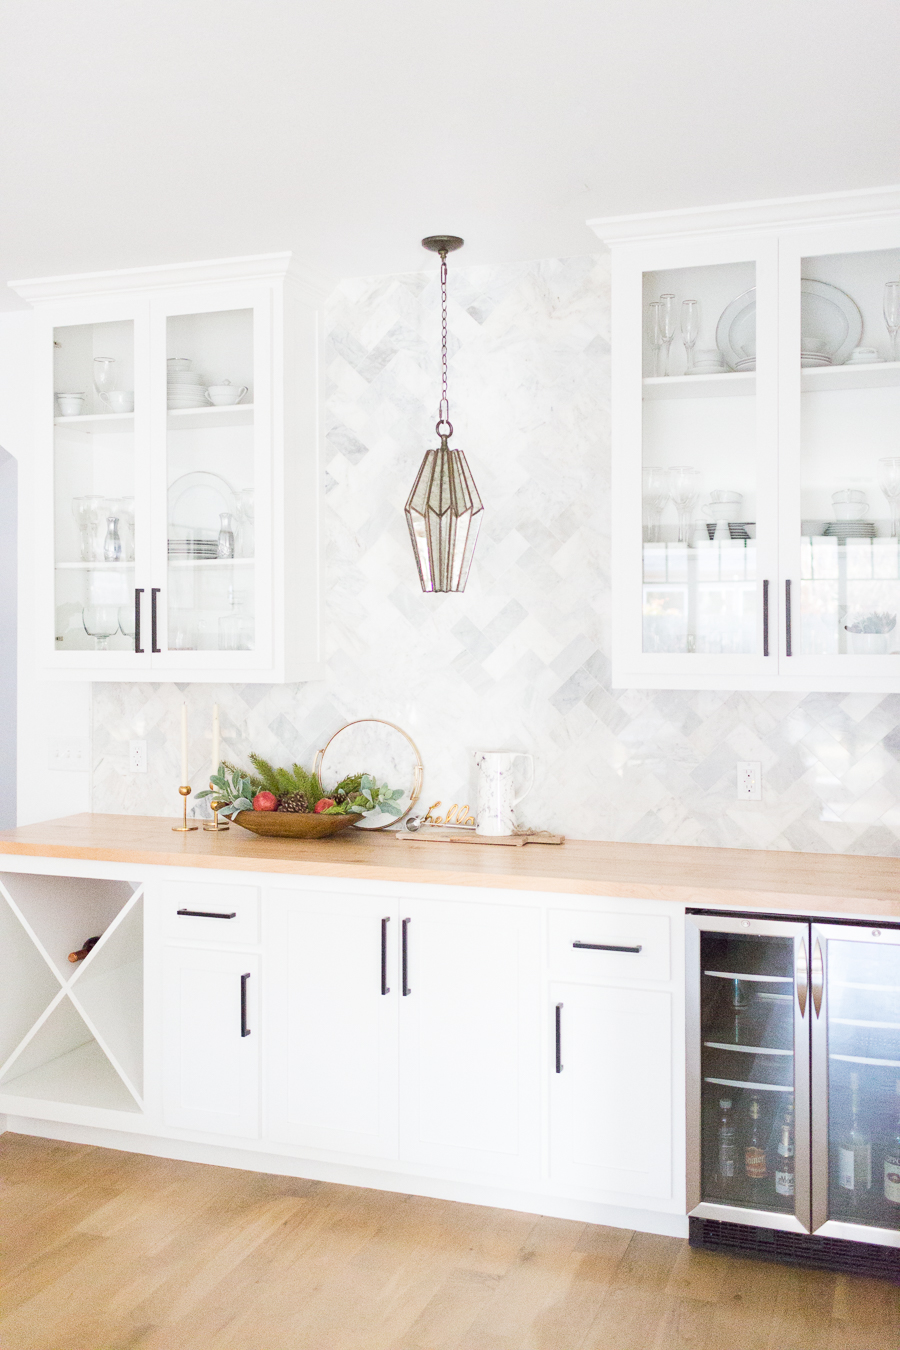 Tulsa Remodel Reveal Modern White Farmhouse black windows and doors marble herringbone backsplash bar butcher block countertop white cabinets black hardware bar faceted pendant lighting-1-4